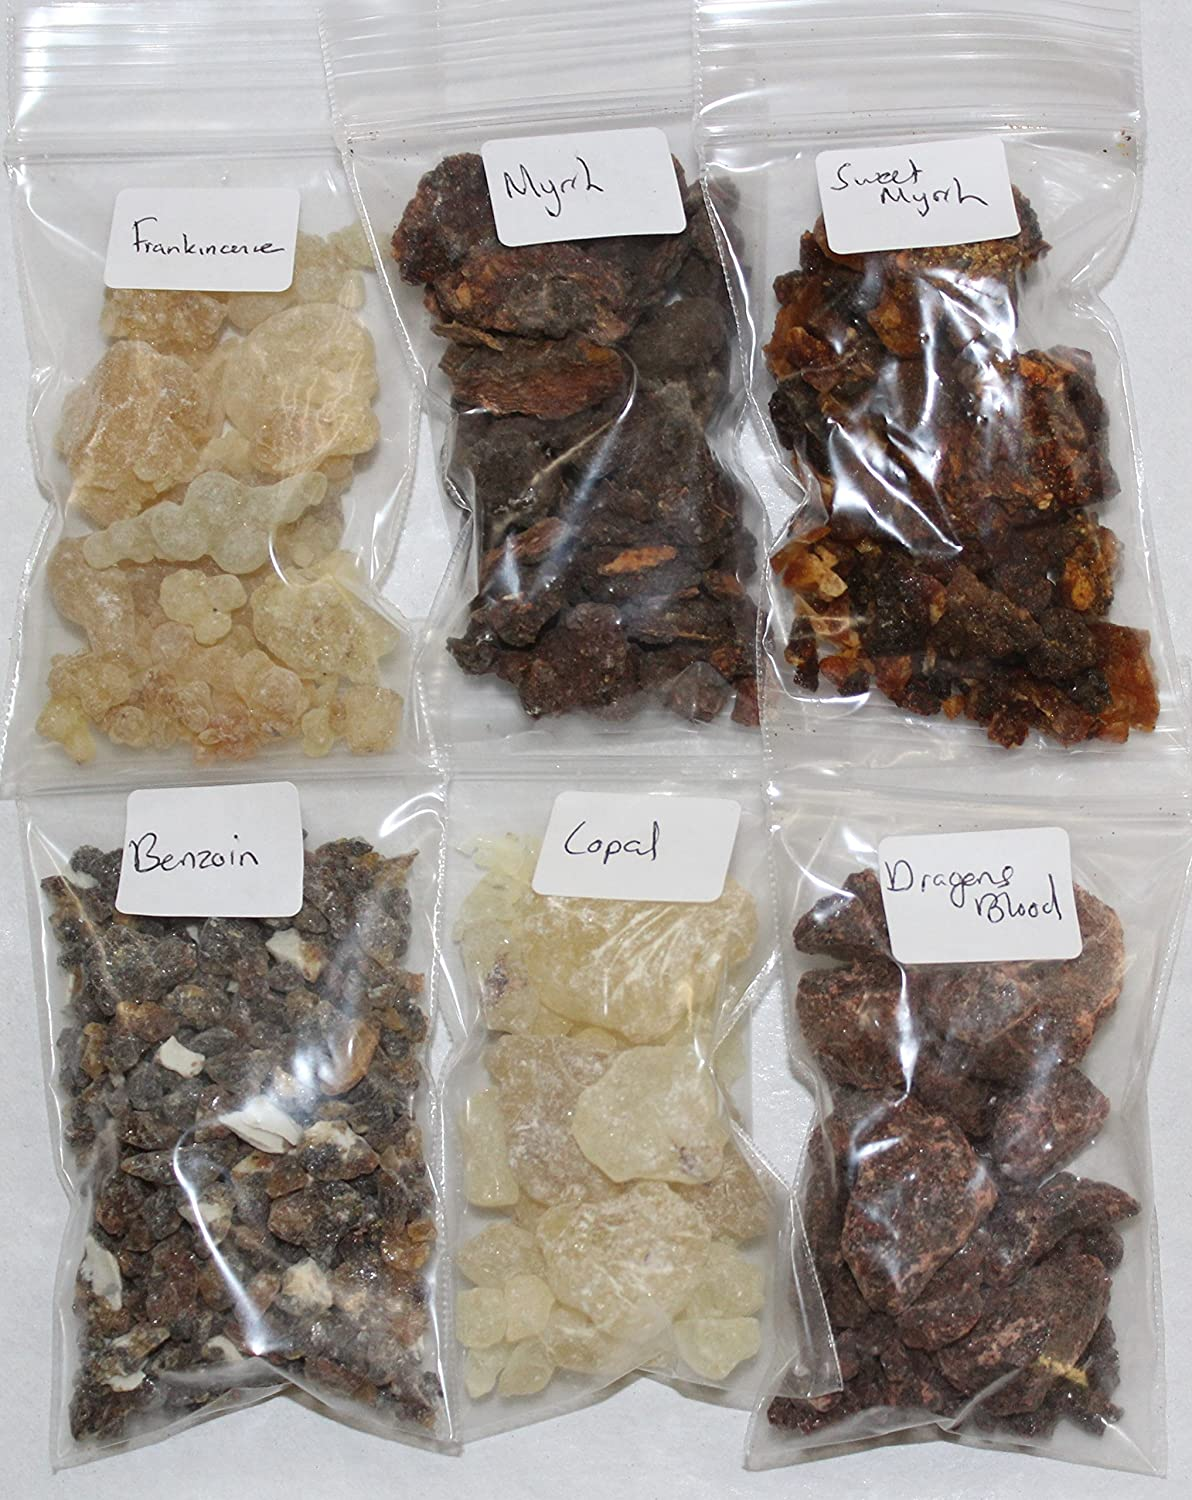 Resin Incense Sampler Set of 6: Frankincense - Myrrh - Opoponax - Benzoin - Copal - Dragons Blood by Rainbowrecords239